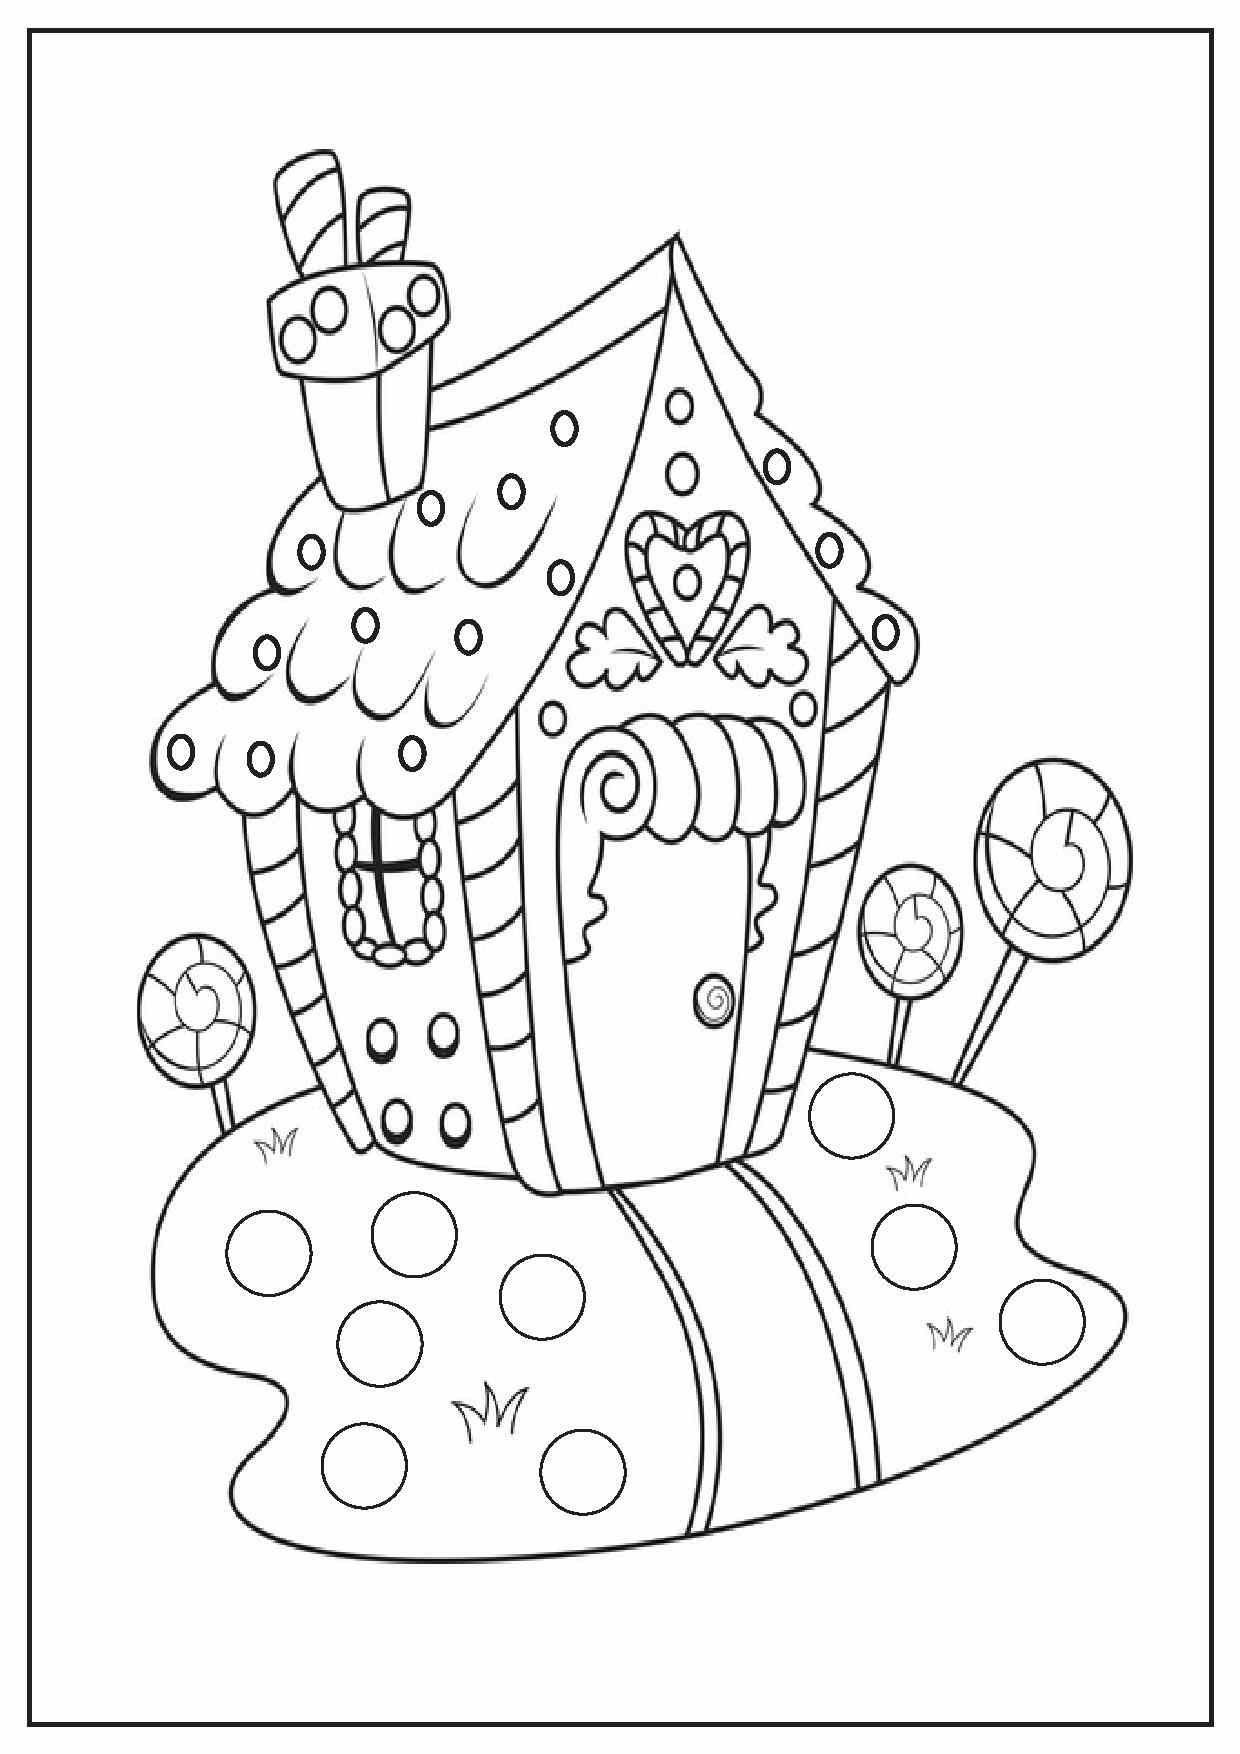 Coloring Pages That You Can Print : Cool coloring pages that you can print home